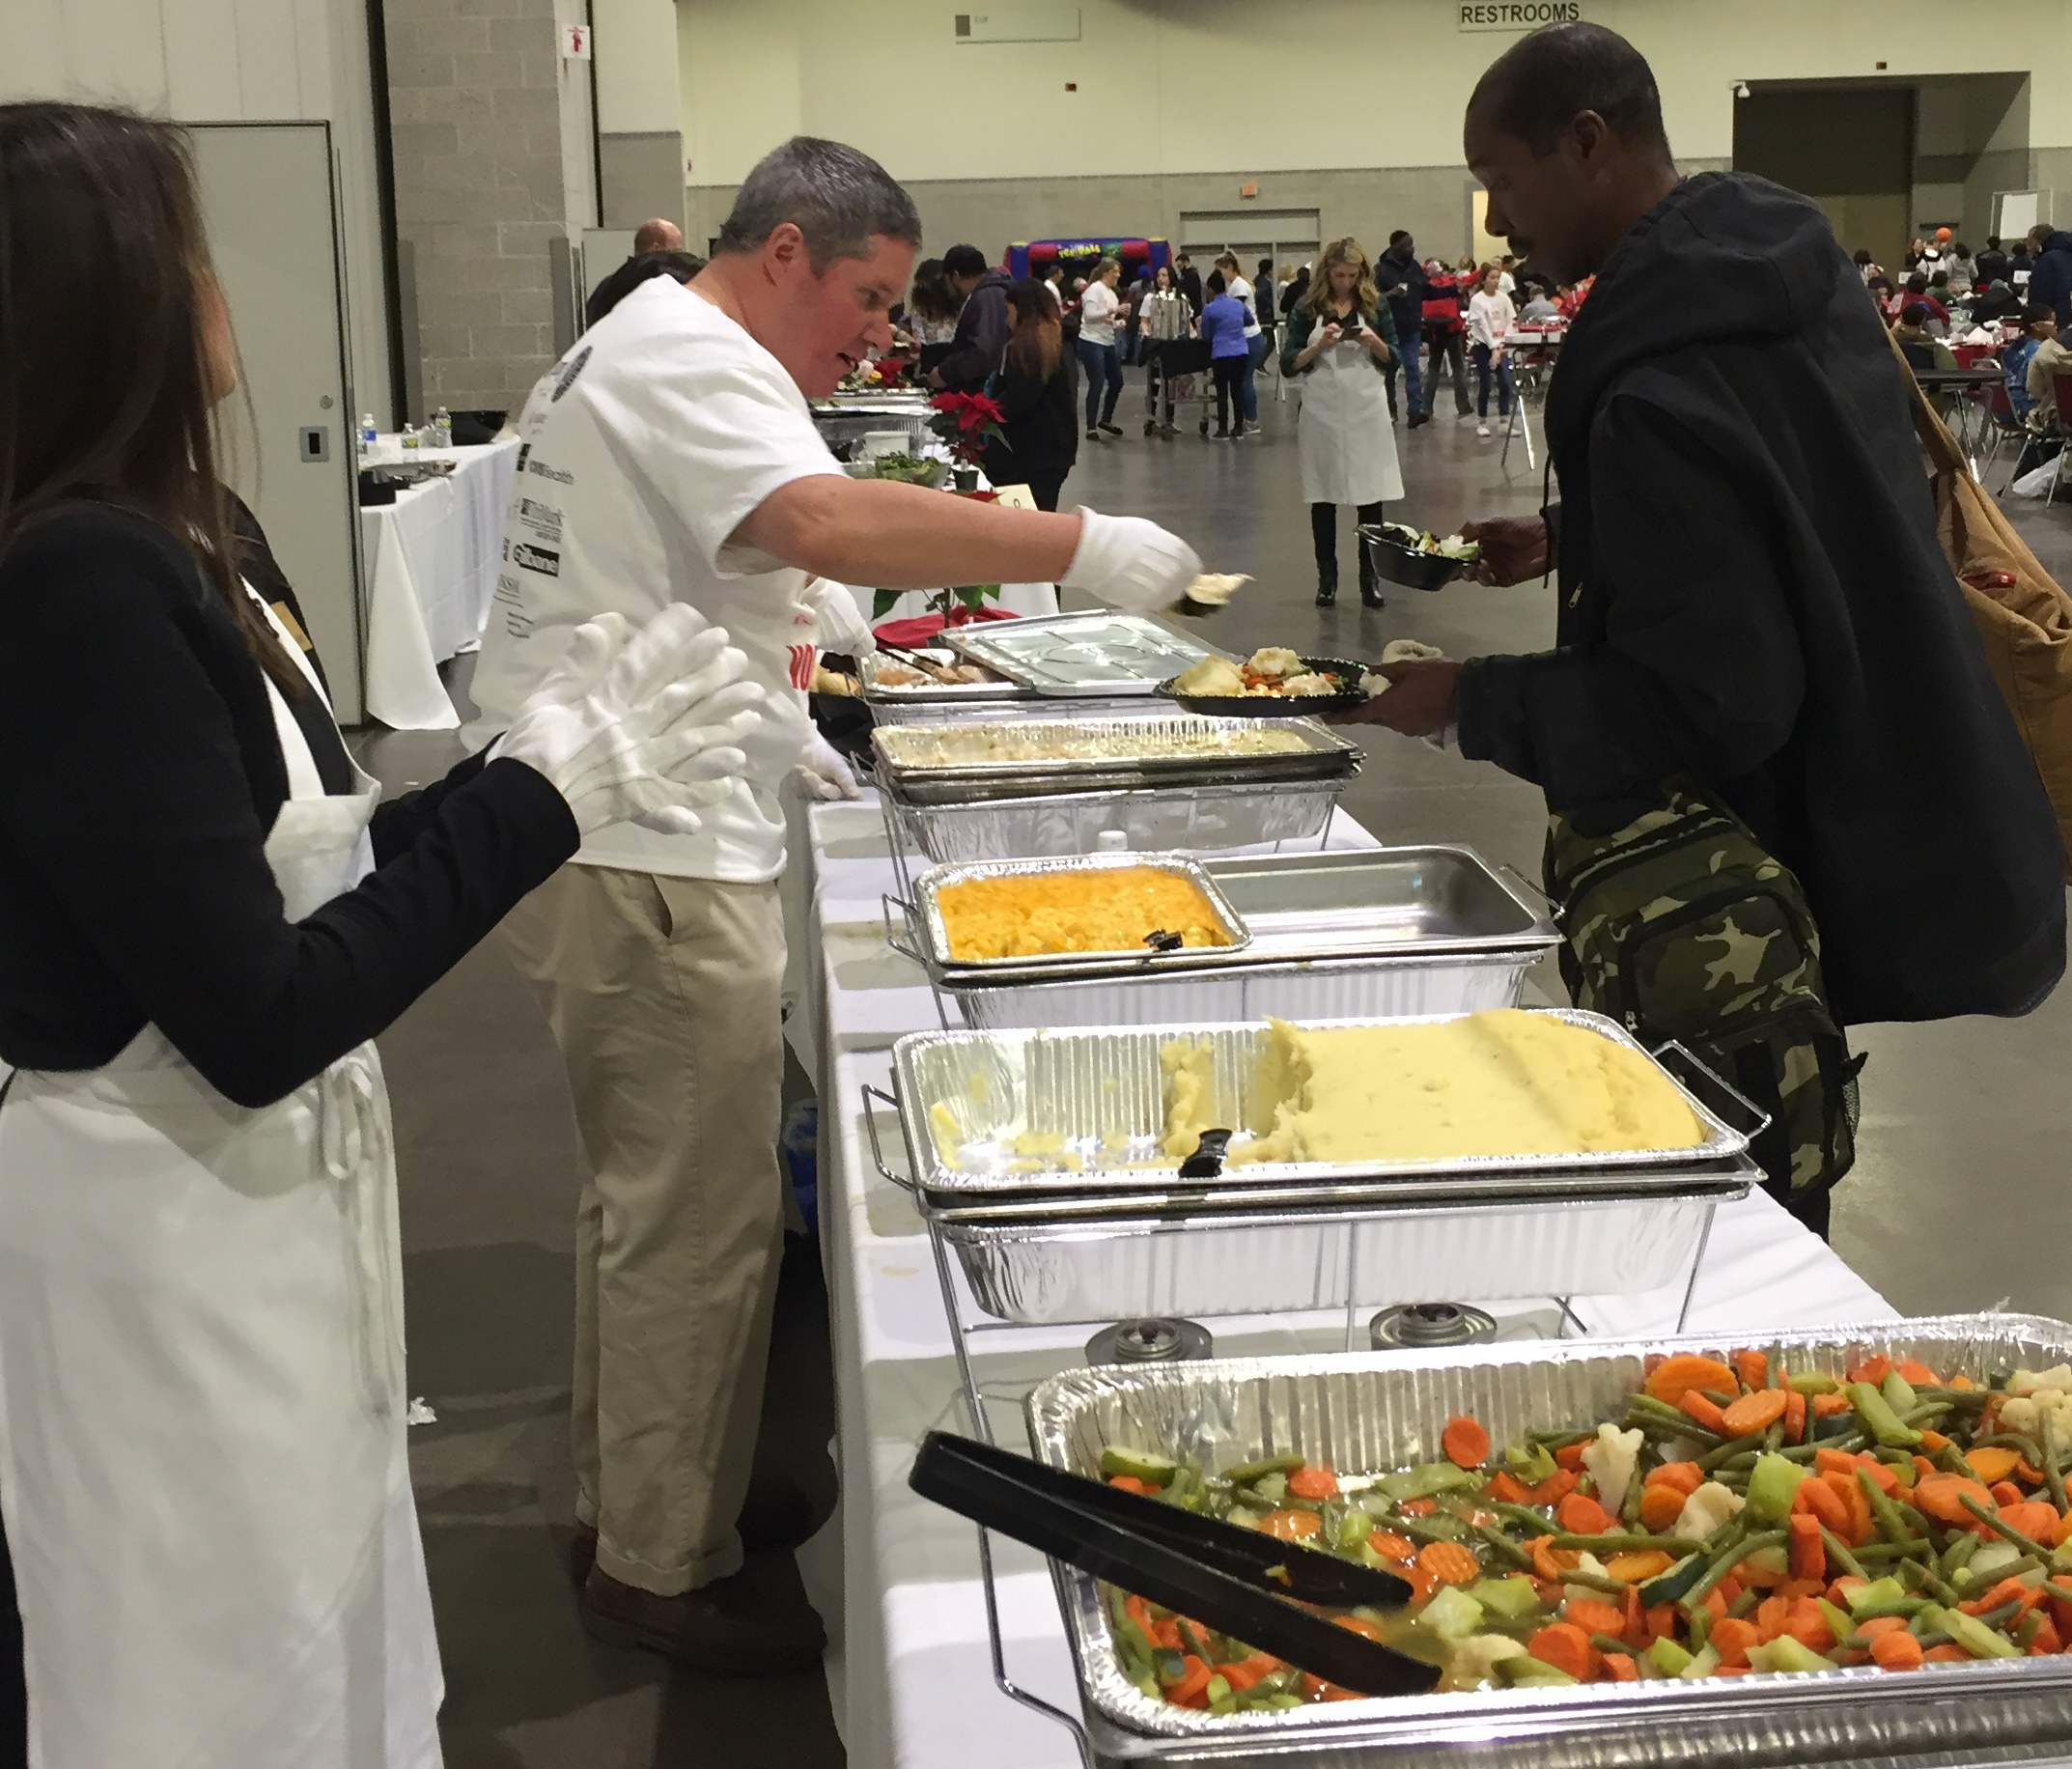 The US Attorney's Office was among those helping to serve a hot meal and provide warm clothing to 2,000 people